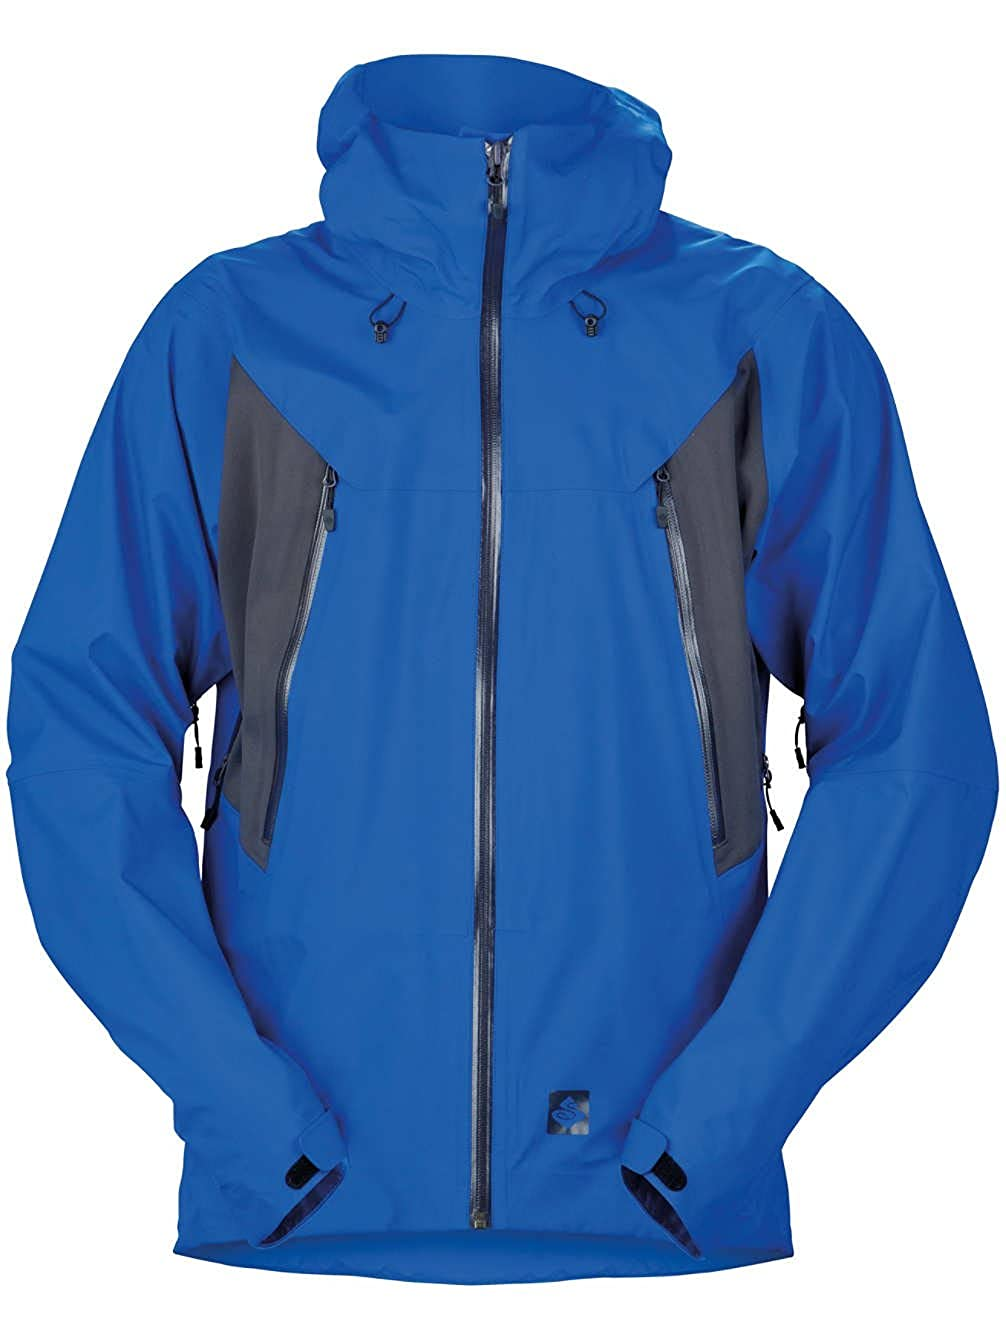 Flash Blau M Sweet Protection Herren Getaway Jacket